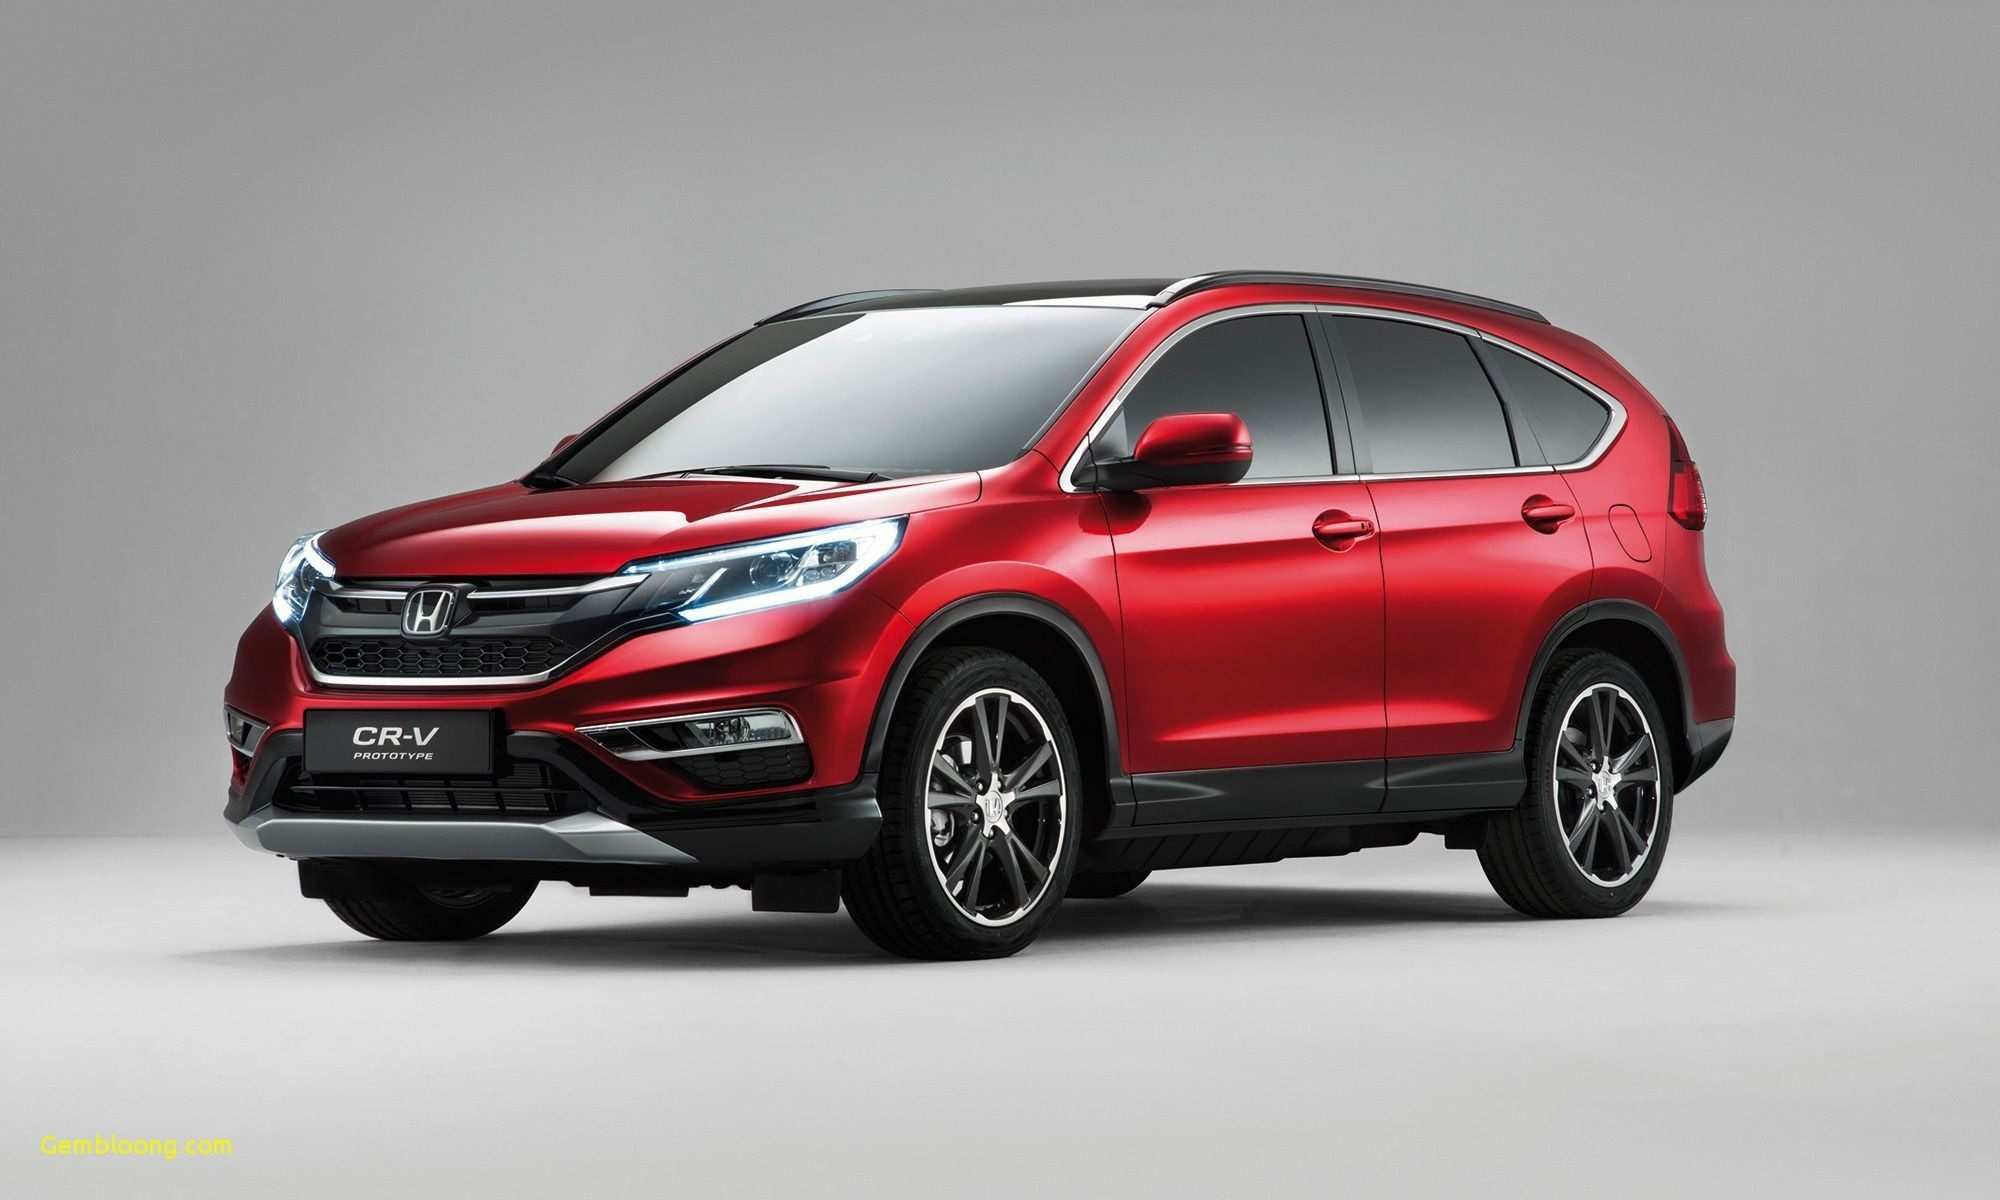 57 The Xe Honda Crv 2020 Prices